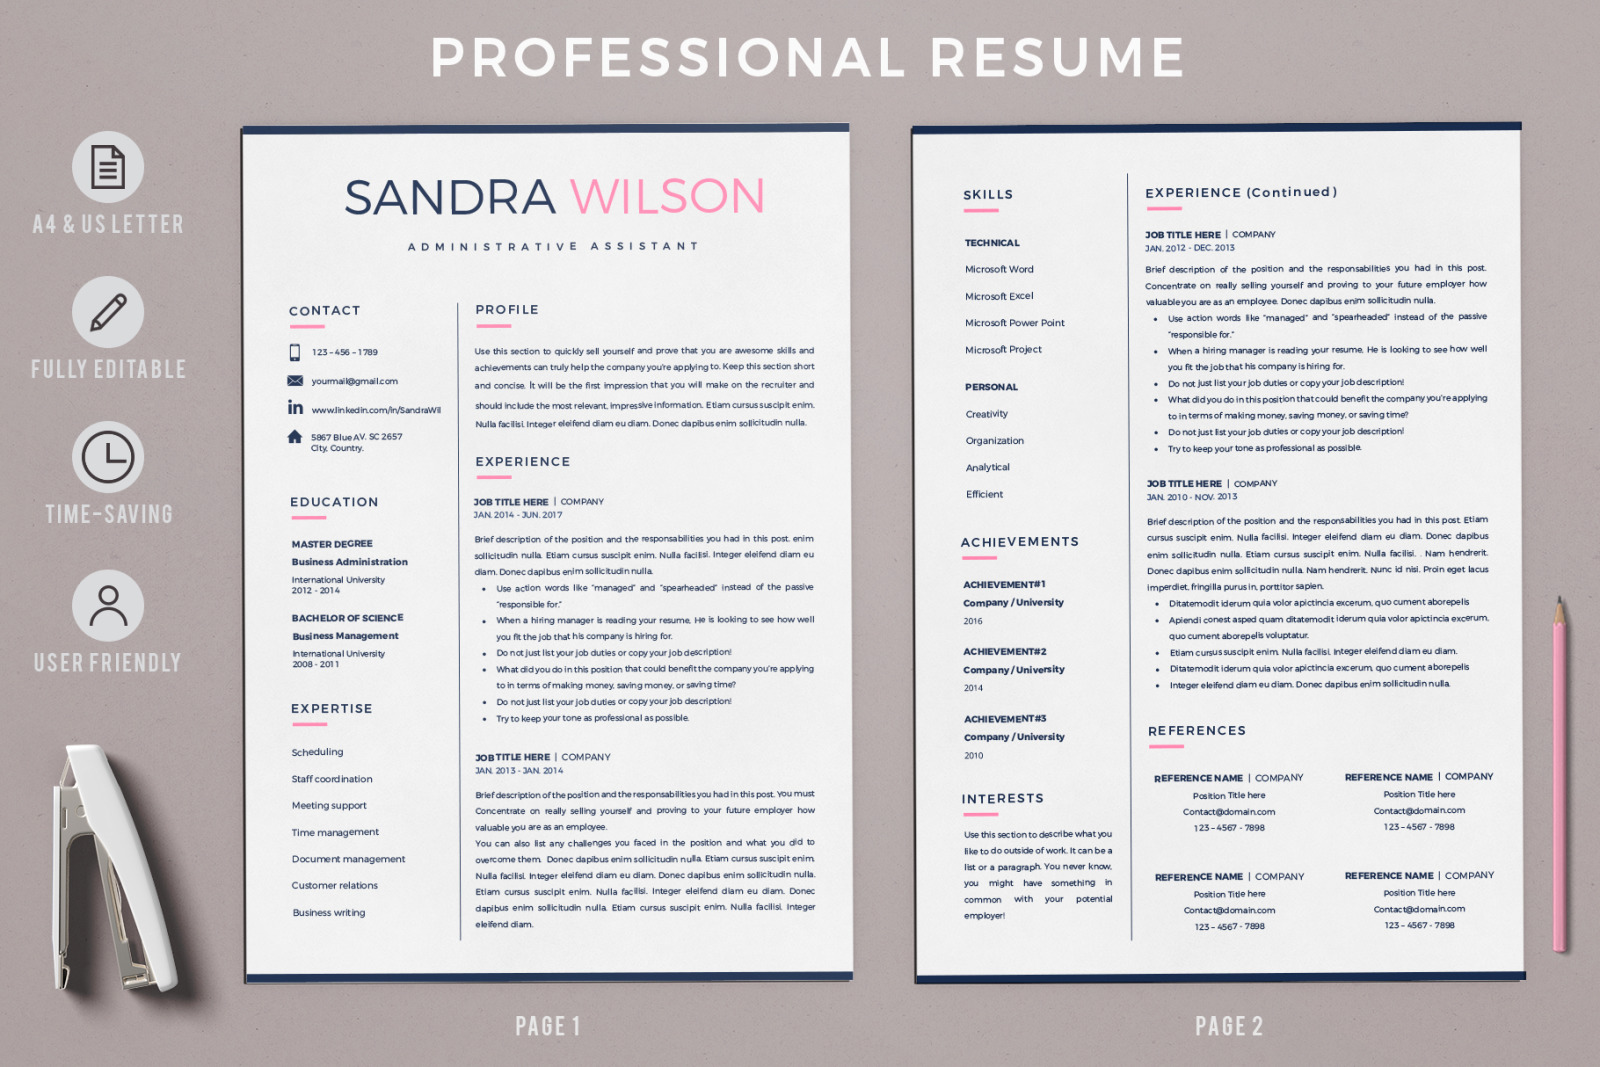 Resume Template Creative for MS Word (docx) and iWork Pages. 2 and 3 Page Resume, CV + Cover Letter